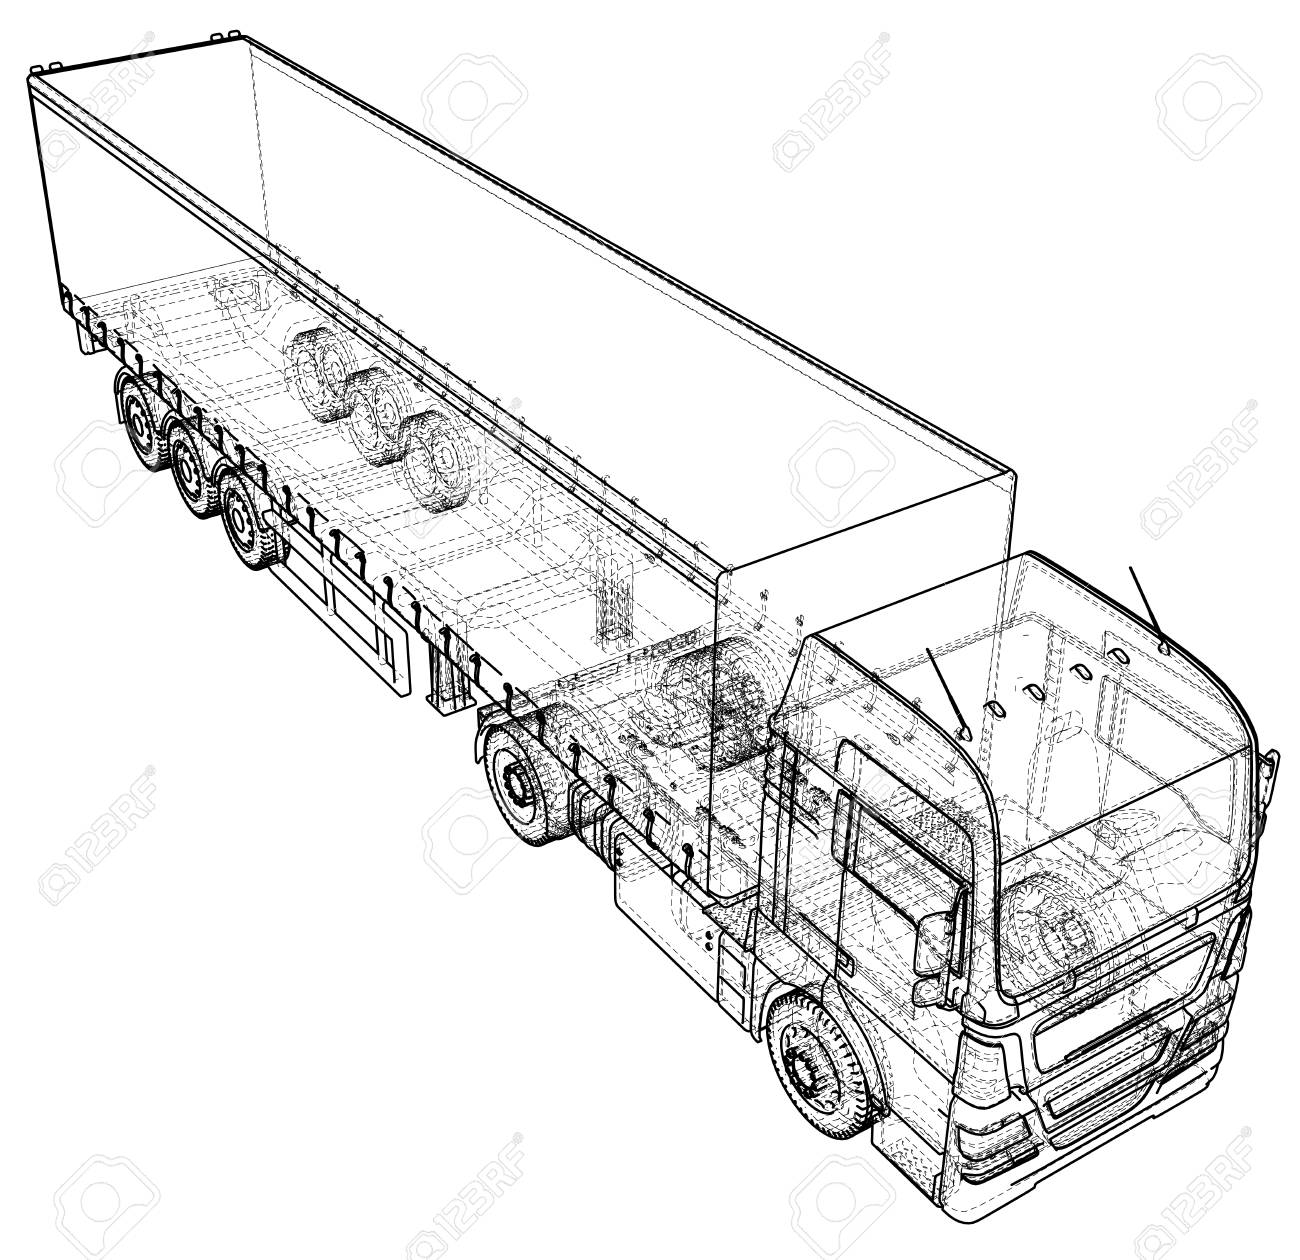 87661236 3d tracing illustration of cargo truck linear style 3d tracing illustration of cargo truck, linear style royalty free